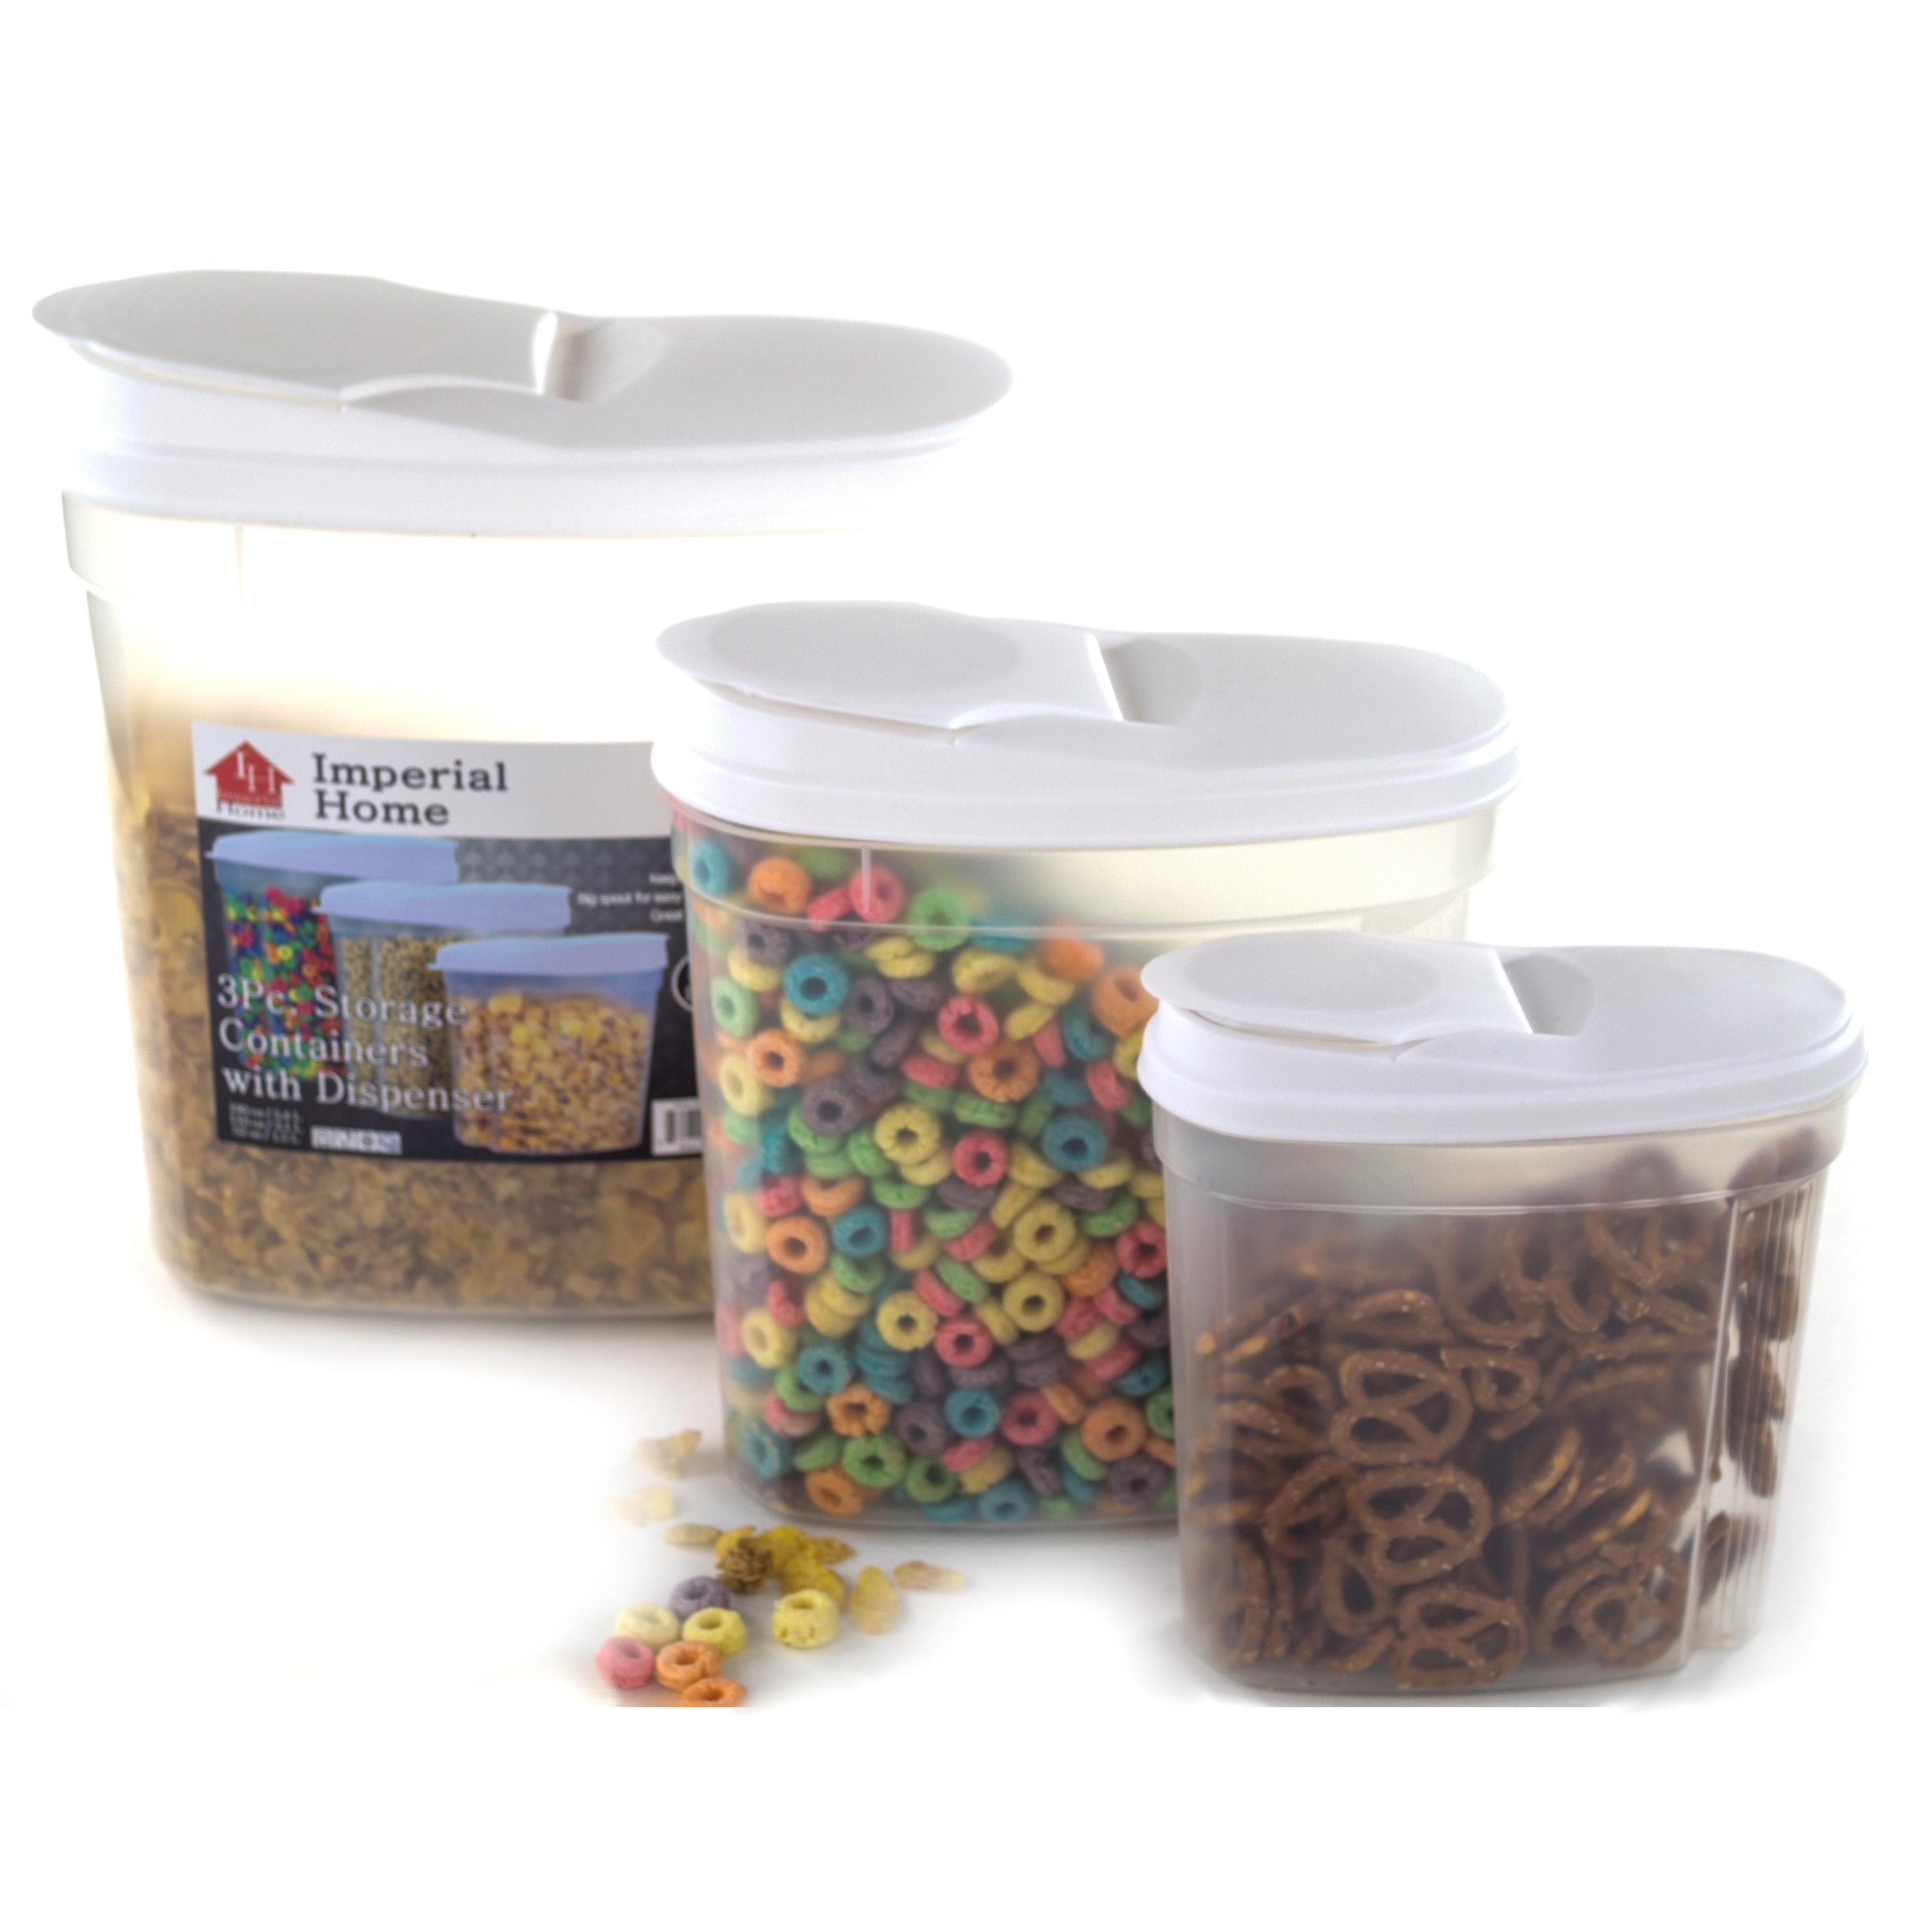 Charmant Shop Plastic Food Storage Container Cereal Dispenser Set (3 Piece)   On  Sale   Free Shipping On Orders Over $45   Overstock.com   11663858